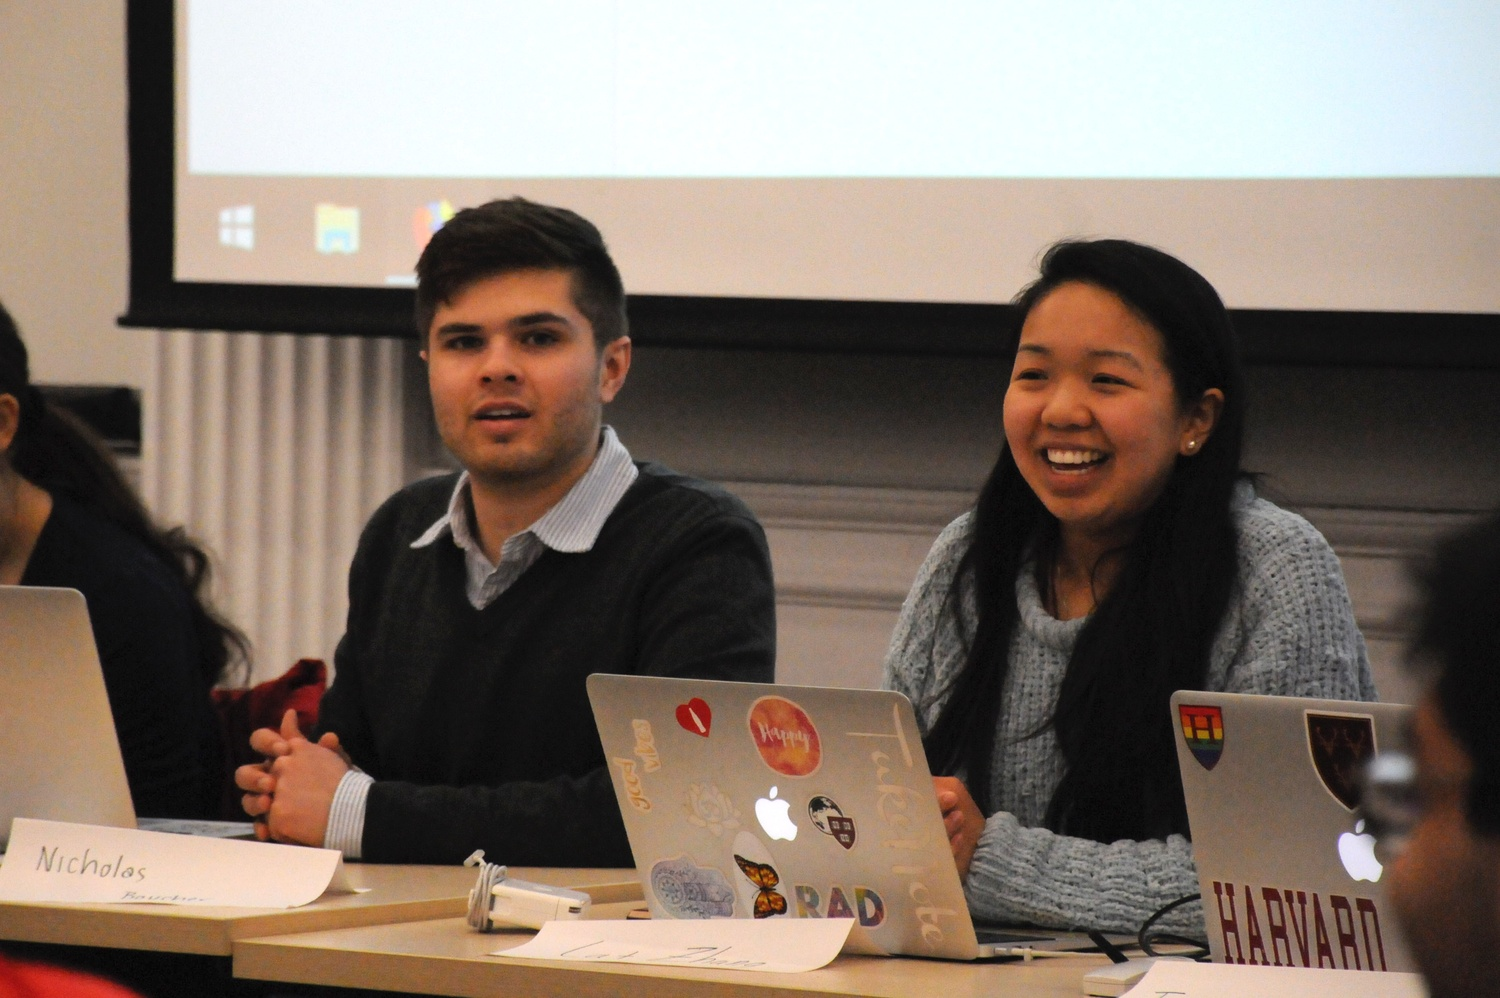 Catherine L. Zhang '19 and Nicholas D. Boucher '19 preside over an Undergraduate Council Meeting.